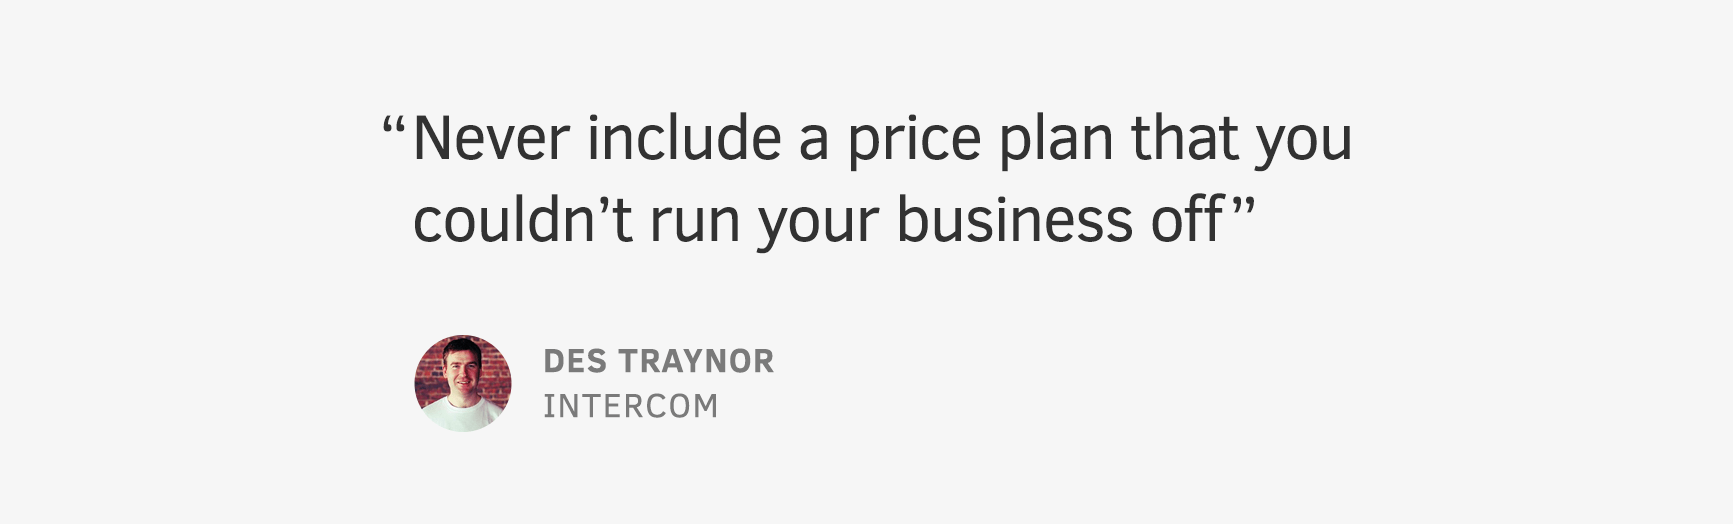 des-traynor-quote